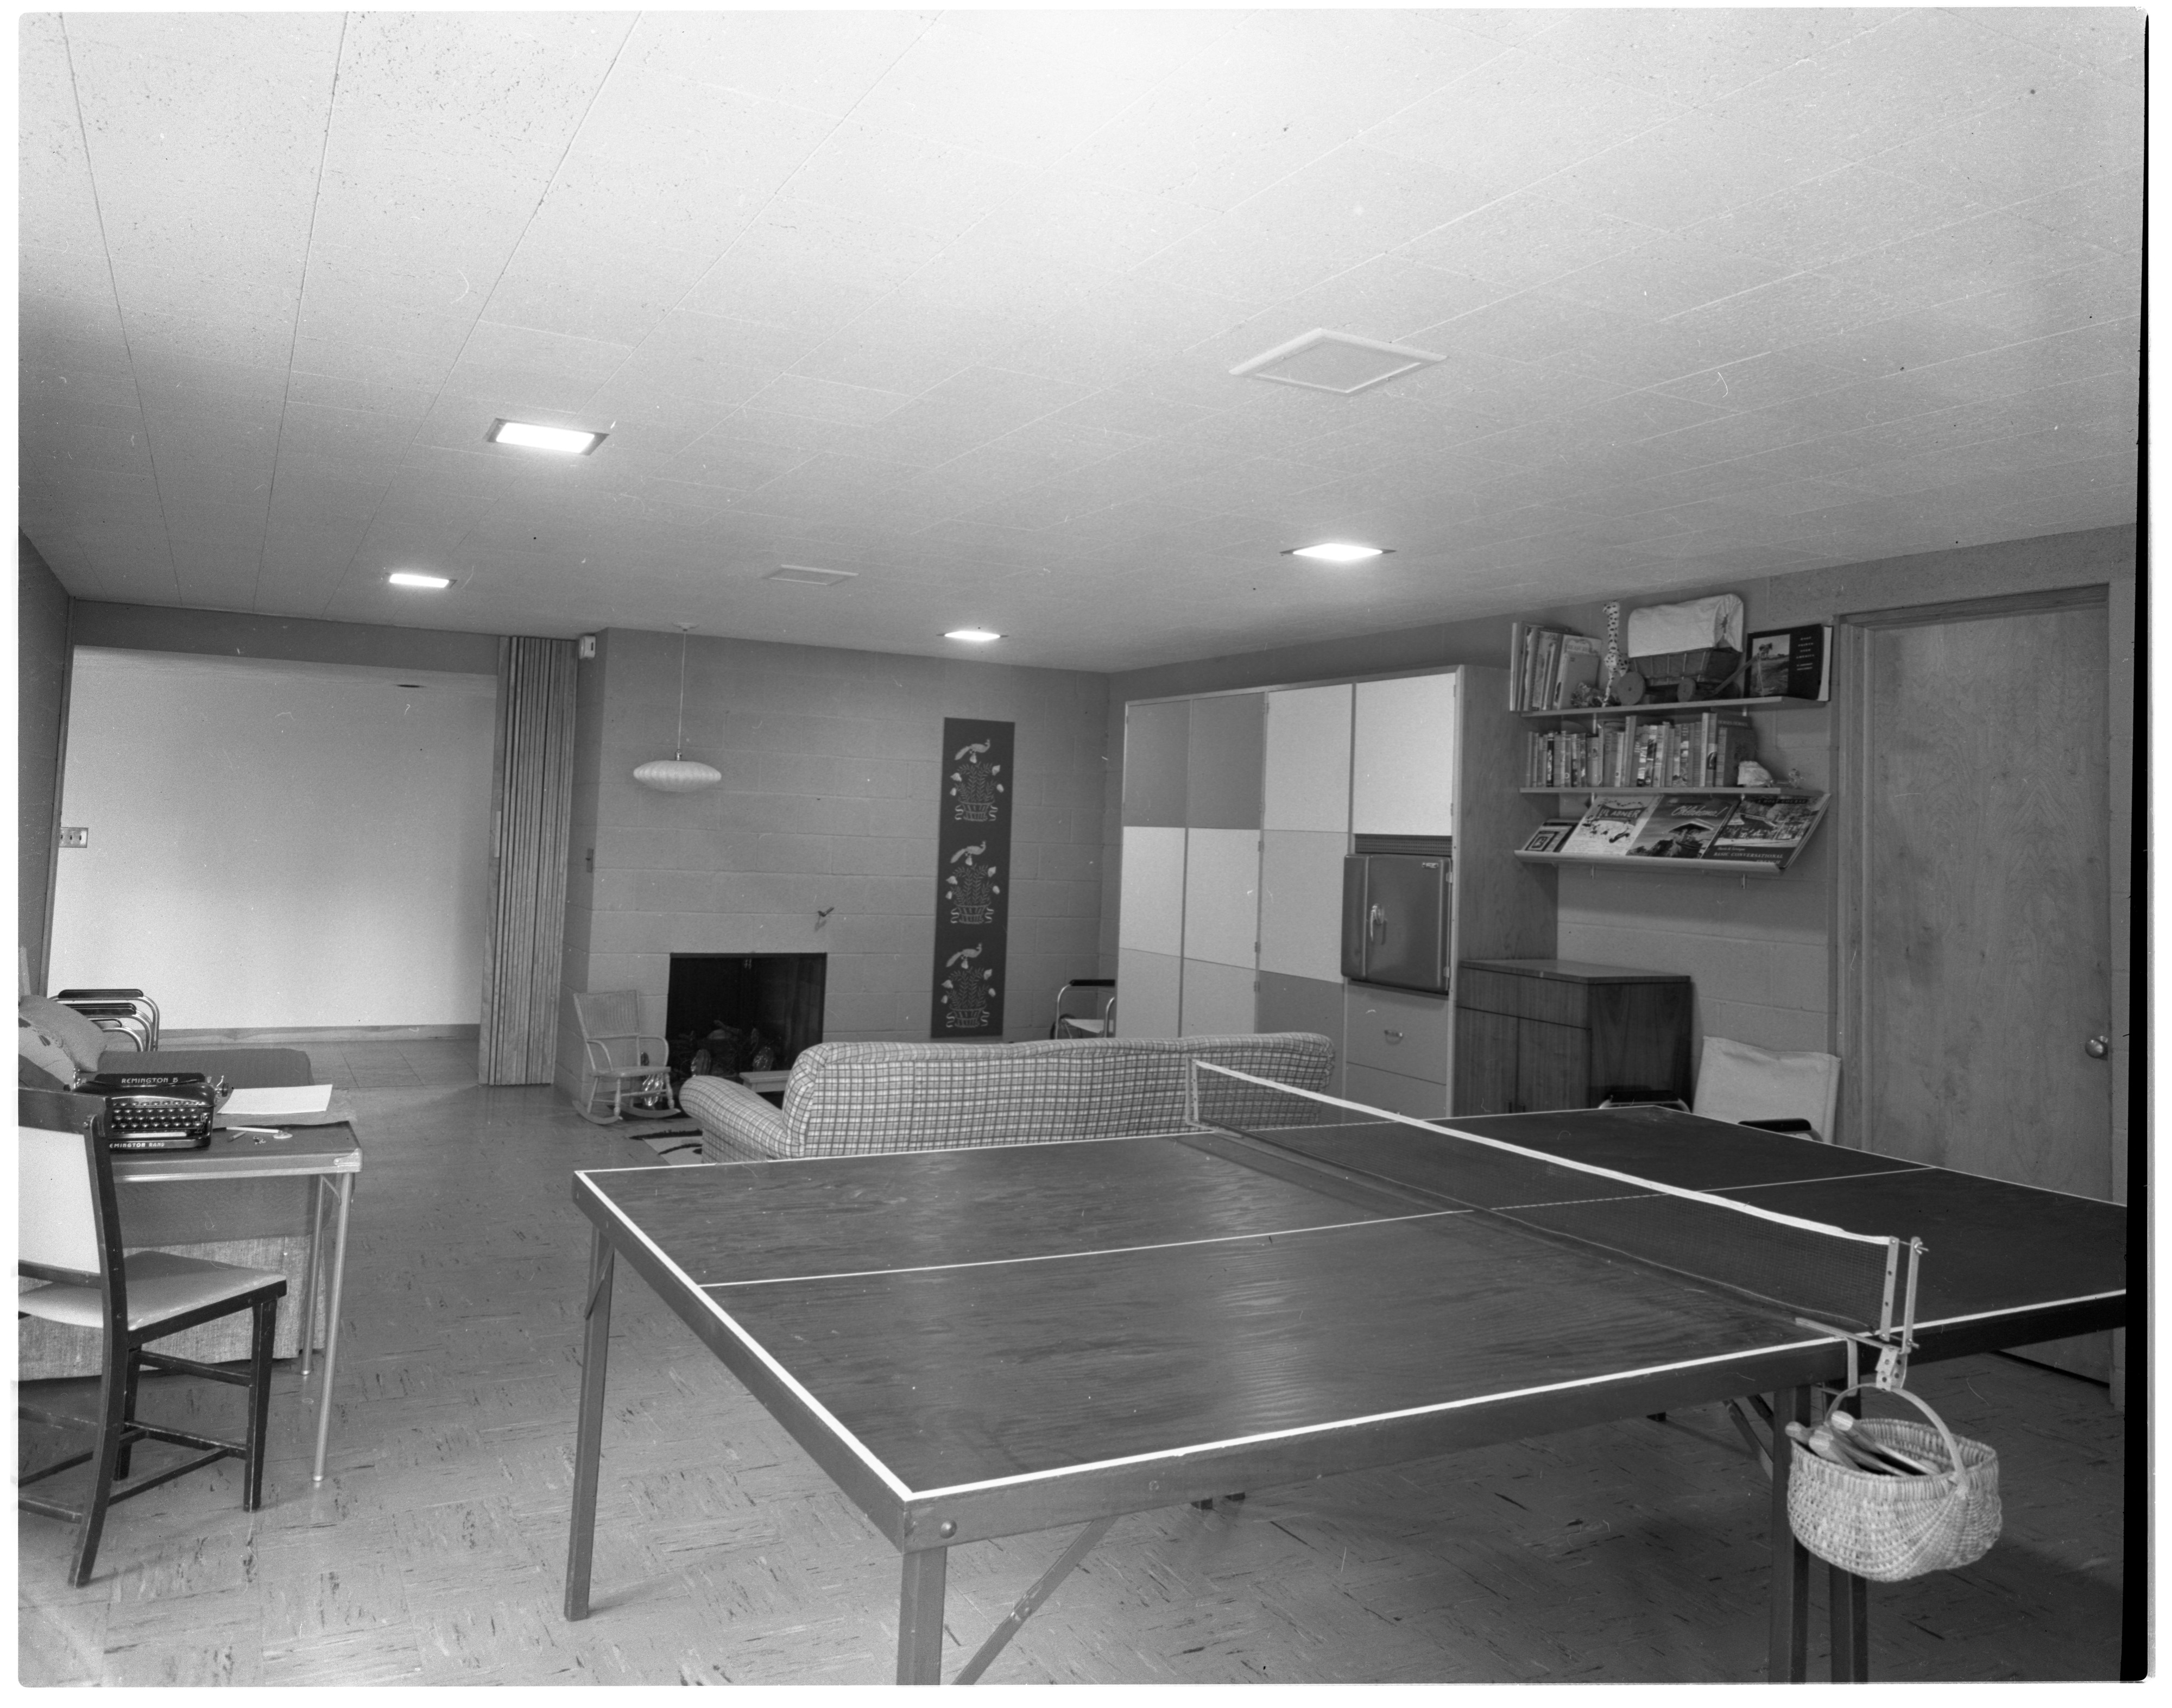 Recreation Room Featured In Lower Level of Moore Home, June 1958 image